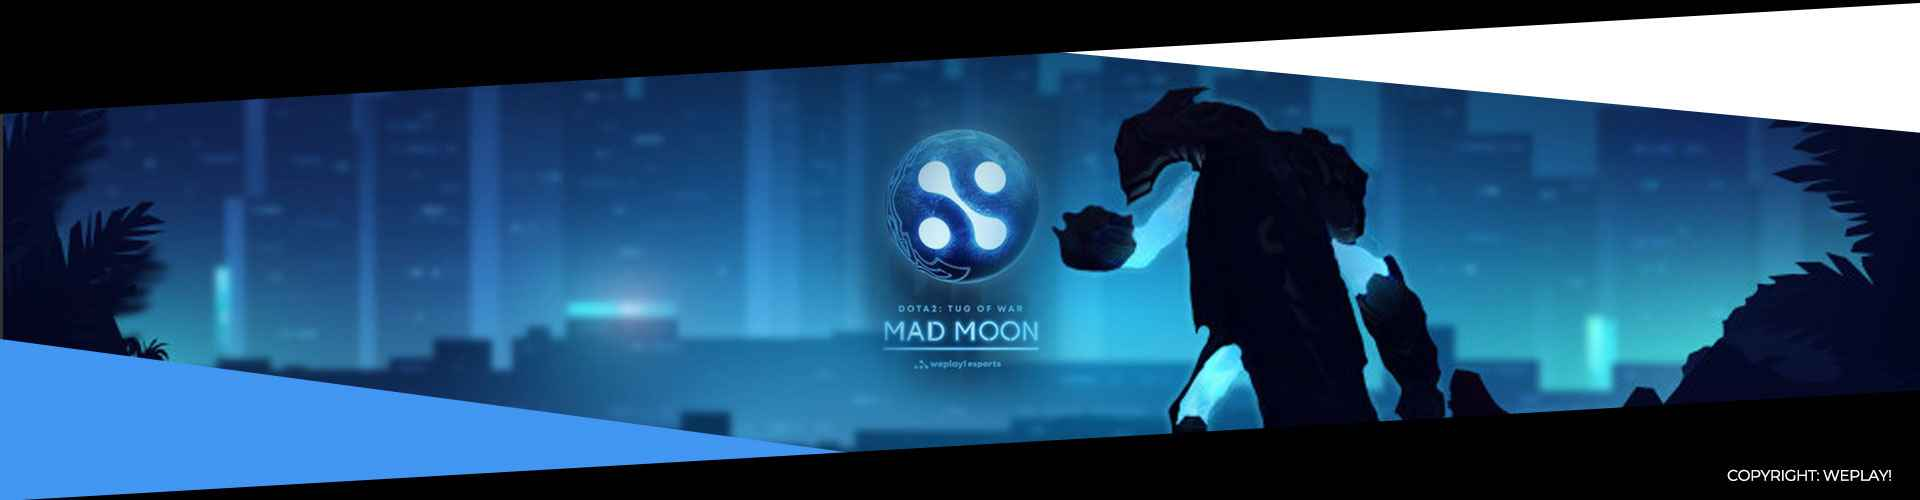 WePlay! Tug of War: Mad Moon Preview